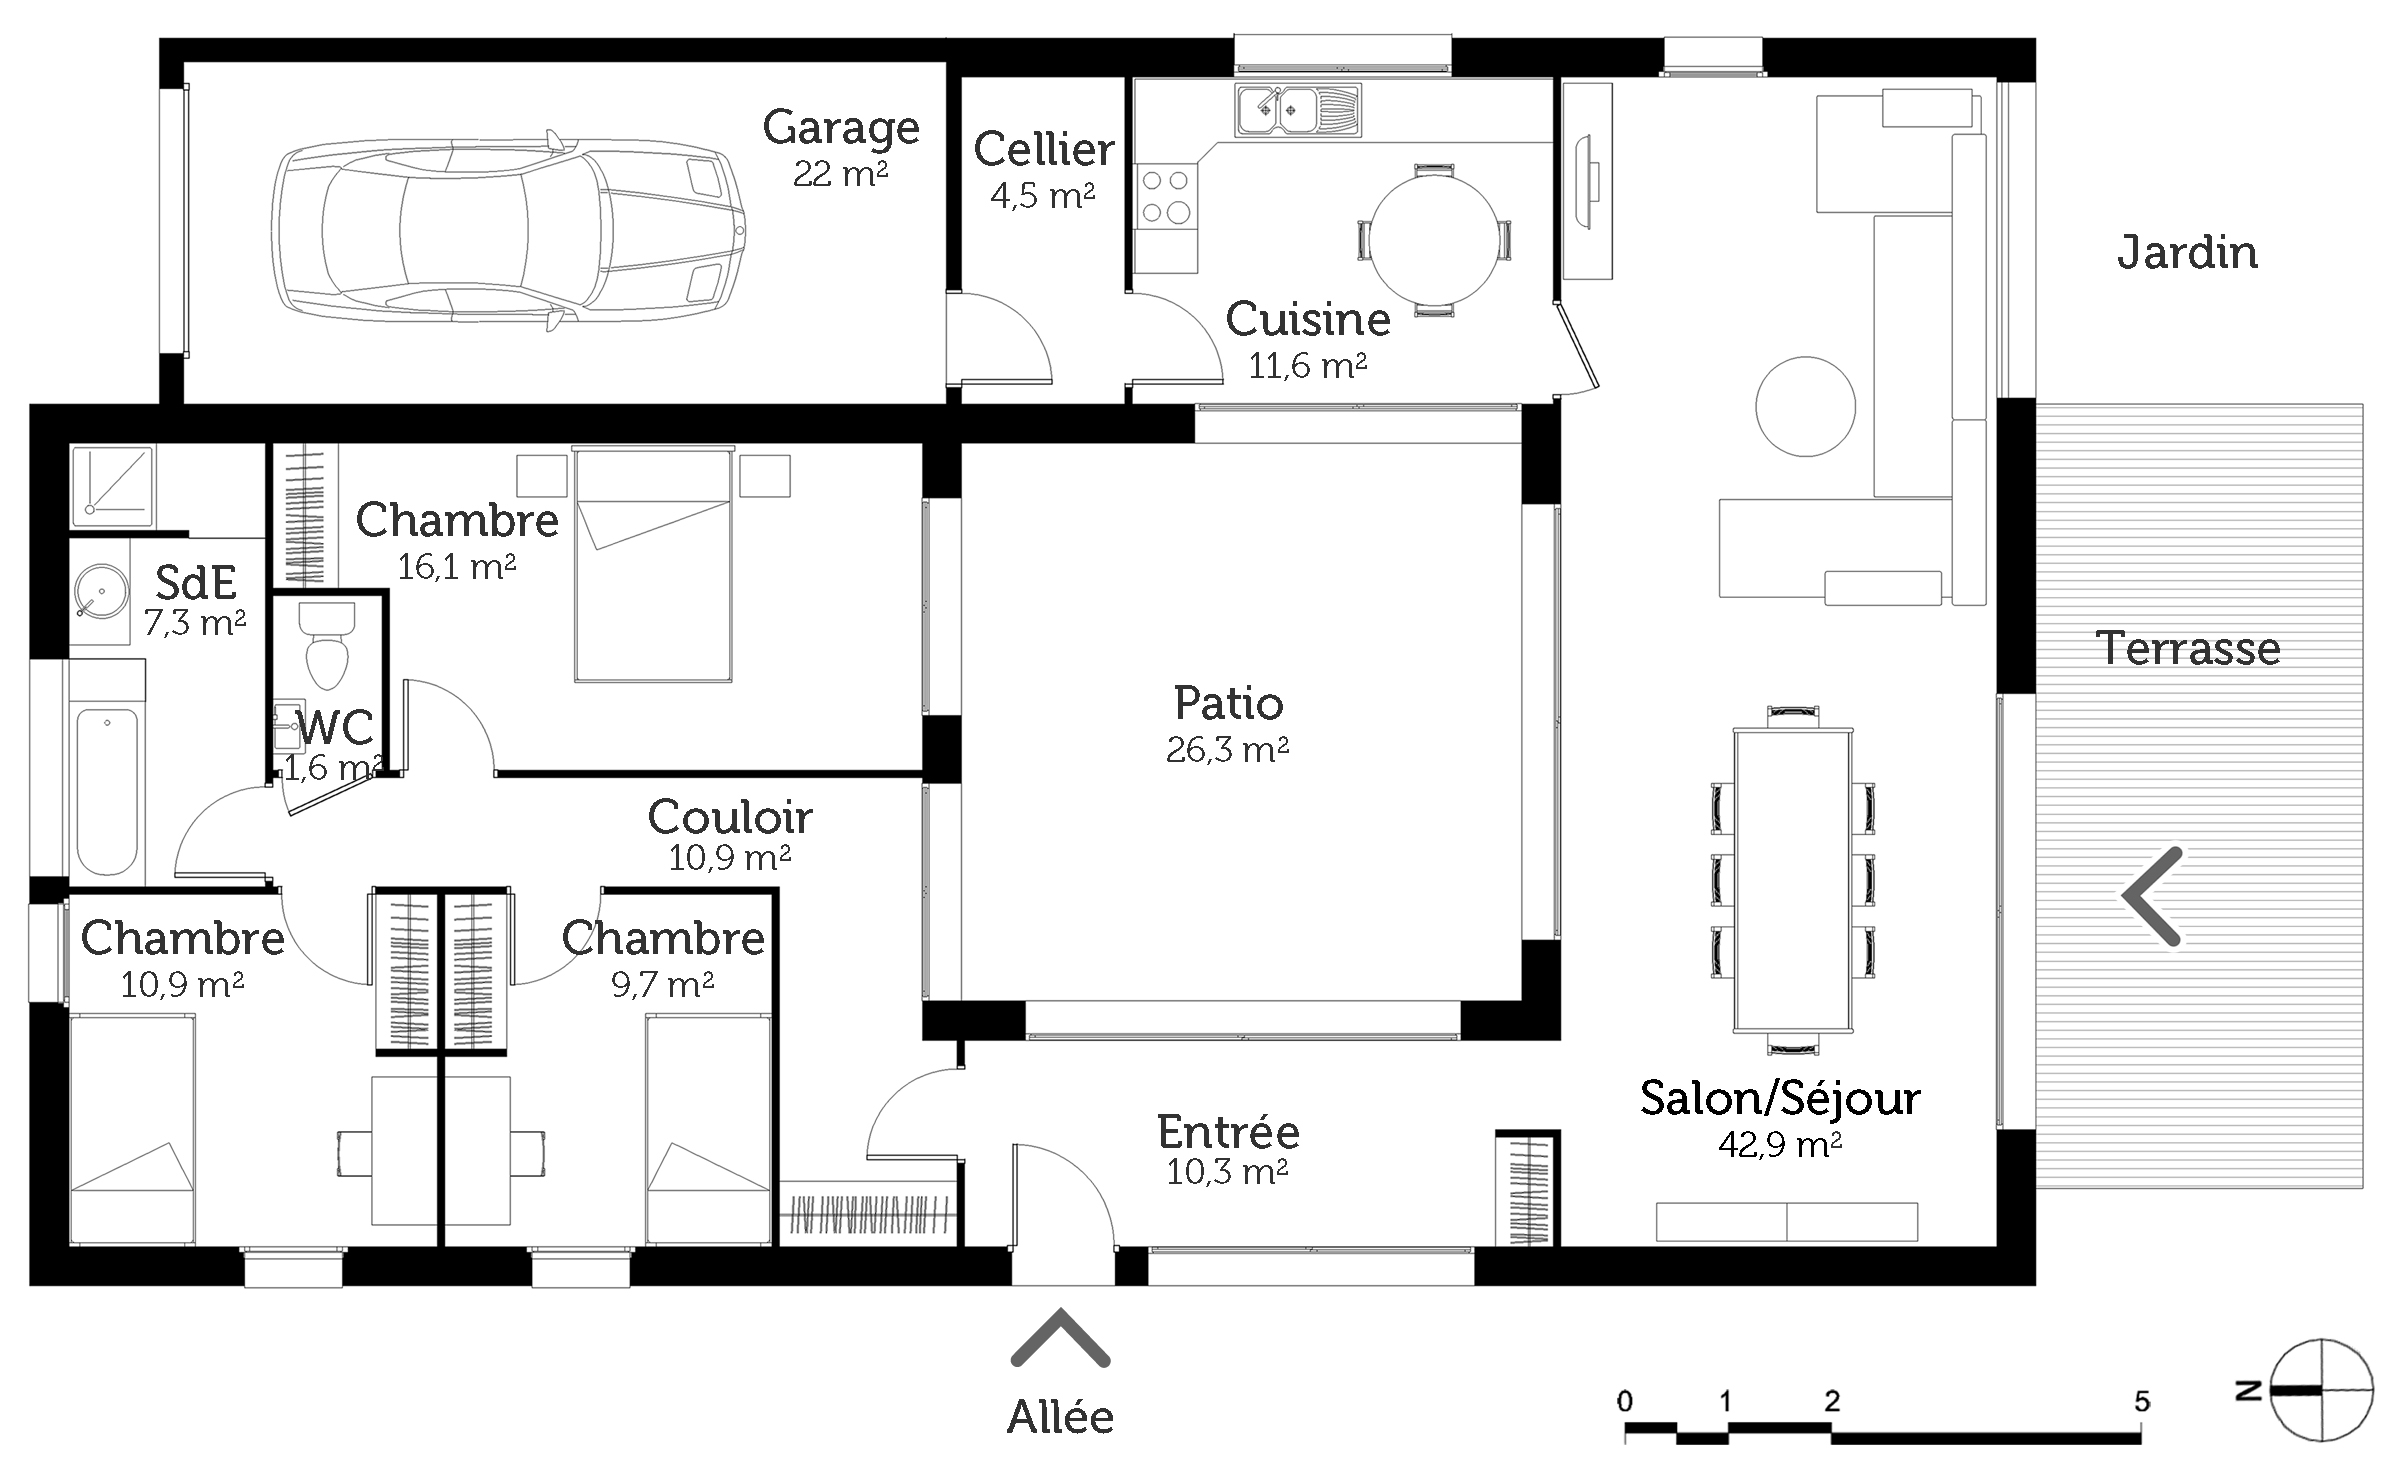 plan de maison 4 chambres avec patio. Black Bedroom Furniture Sets. Home Design Ideas